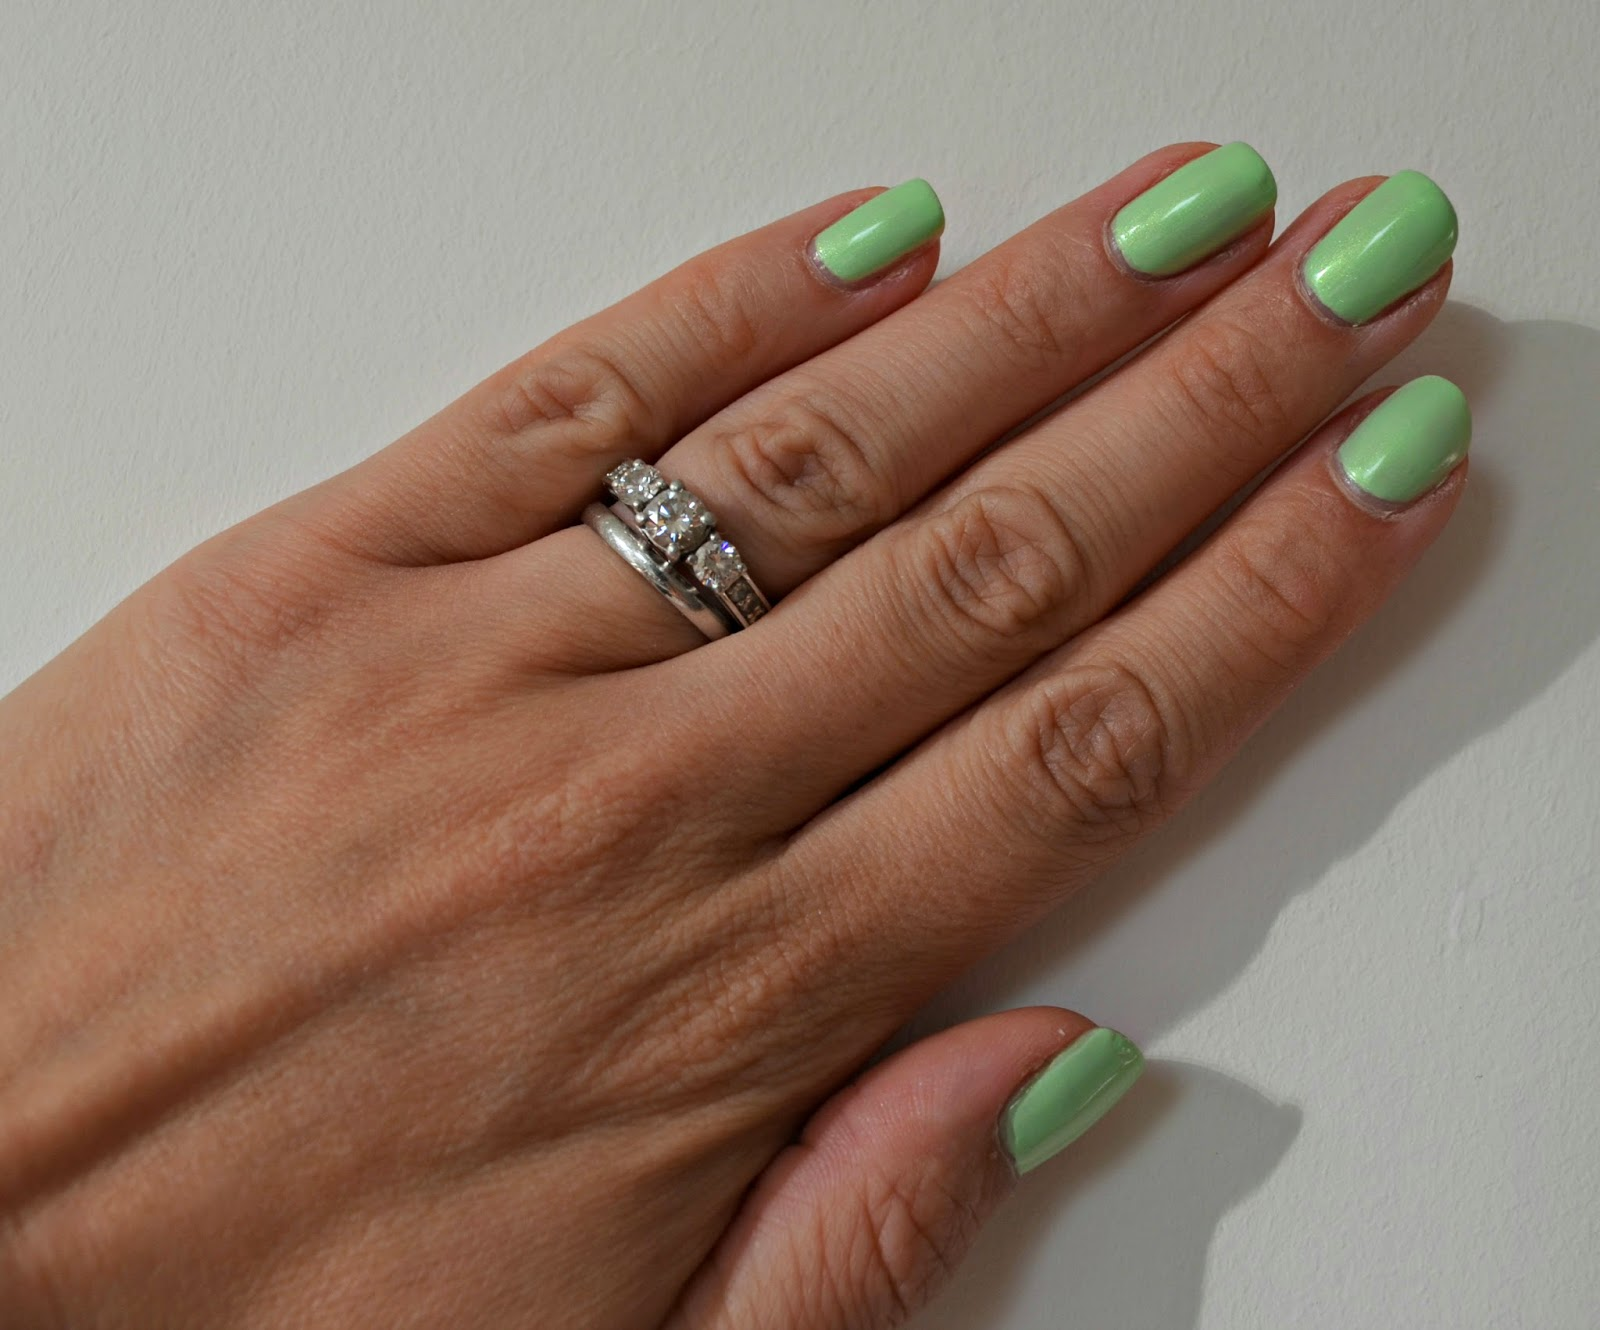 Pixi nails lime lustre